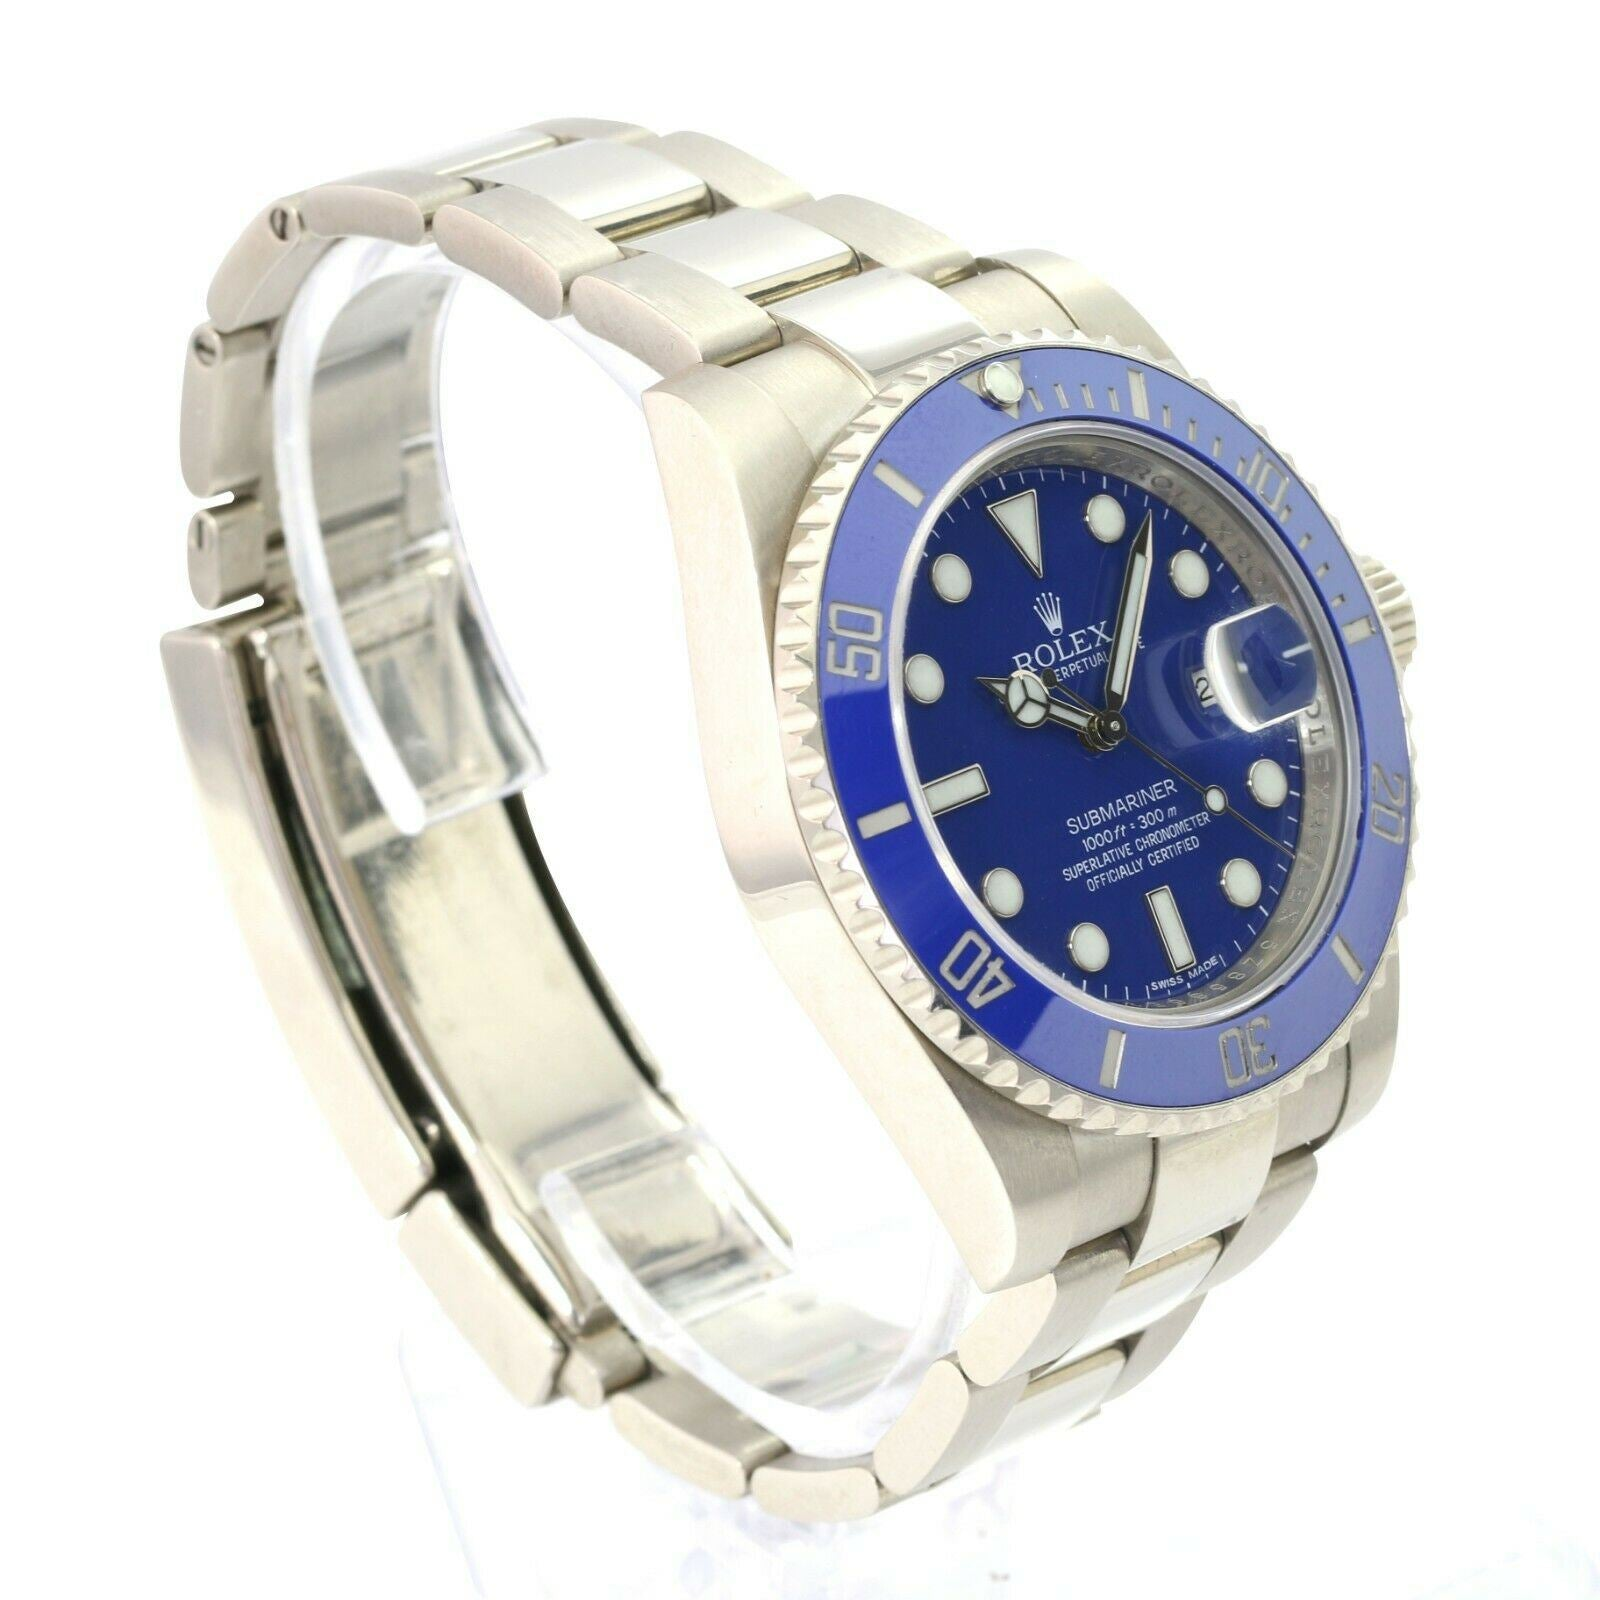 Rolex White Gold Submariner Blue CERAMIC 116619 SMURF 40mm Men's Watch - Time Keepers Vault